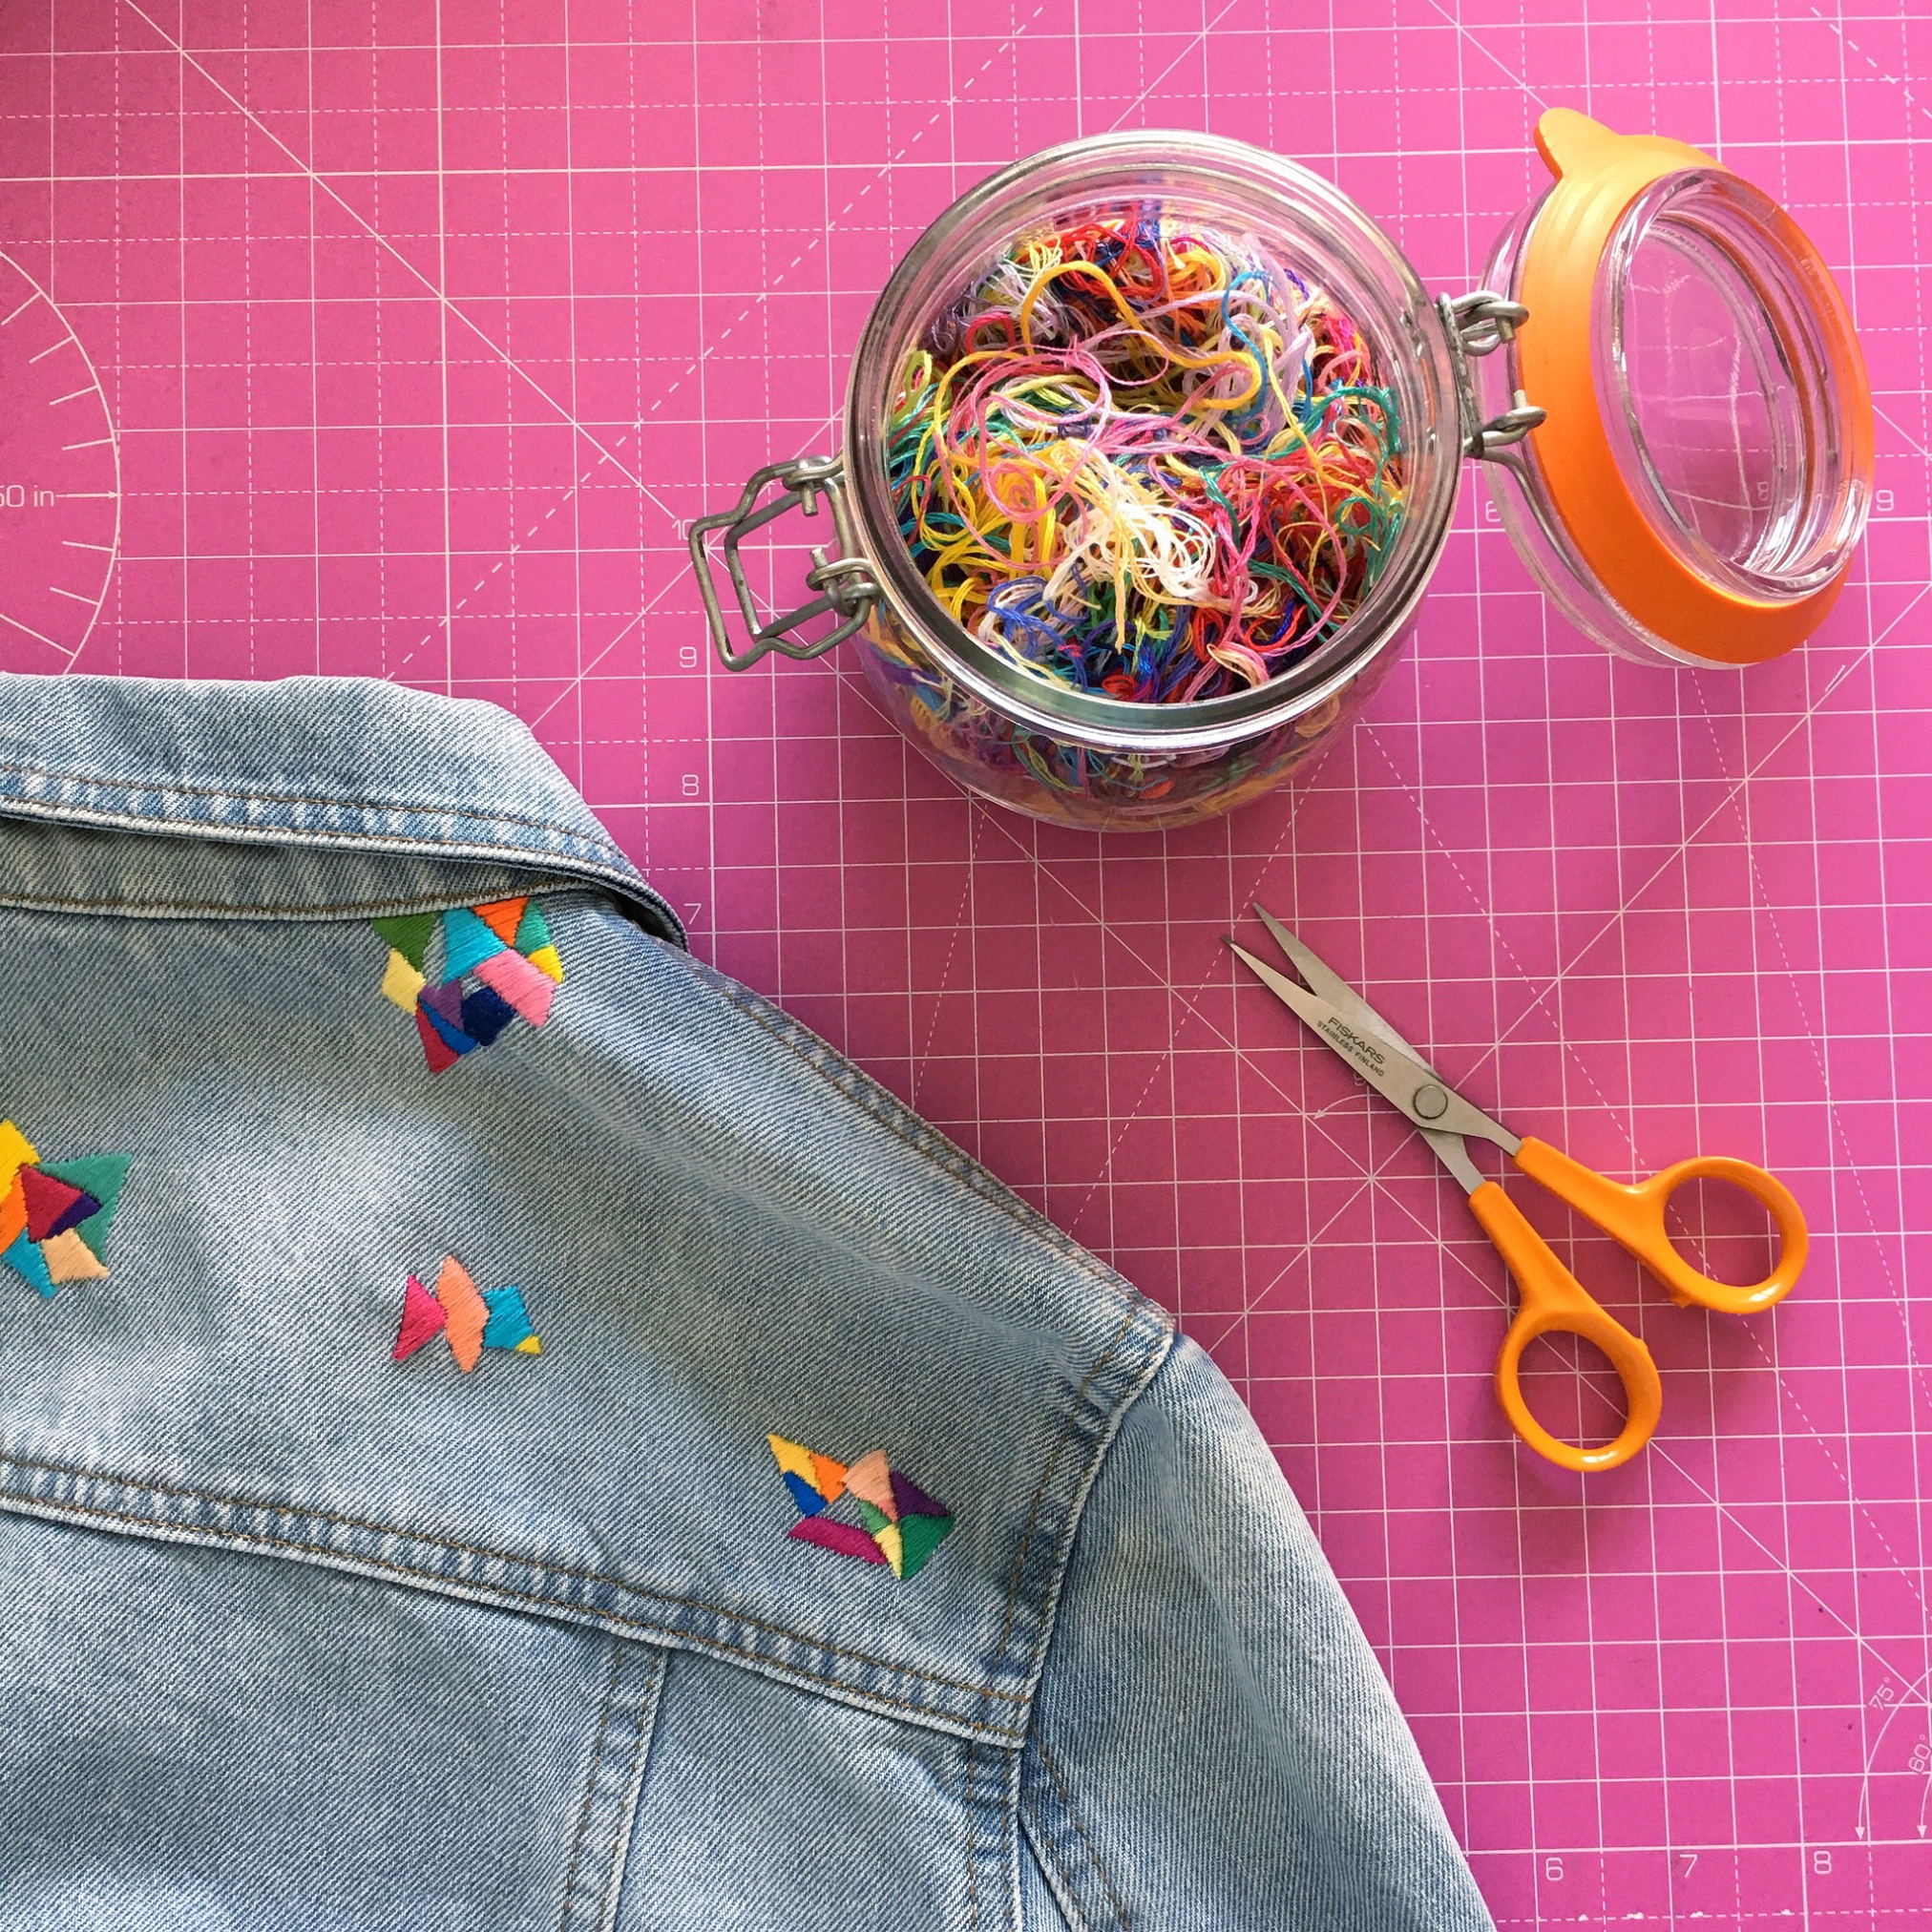 Customised denim jacket from Colourful Fun Embroidery | Hello! Hooray!